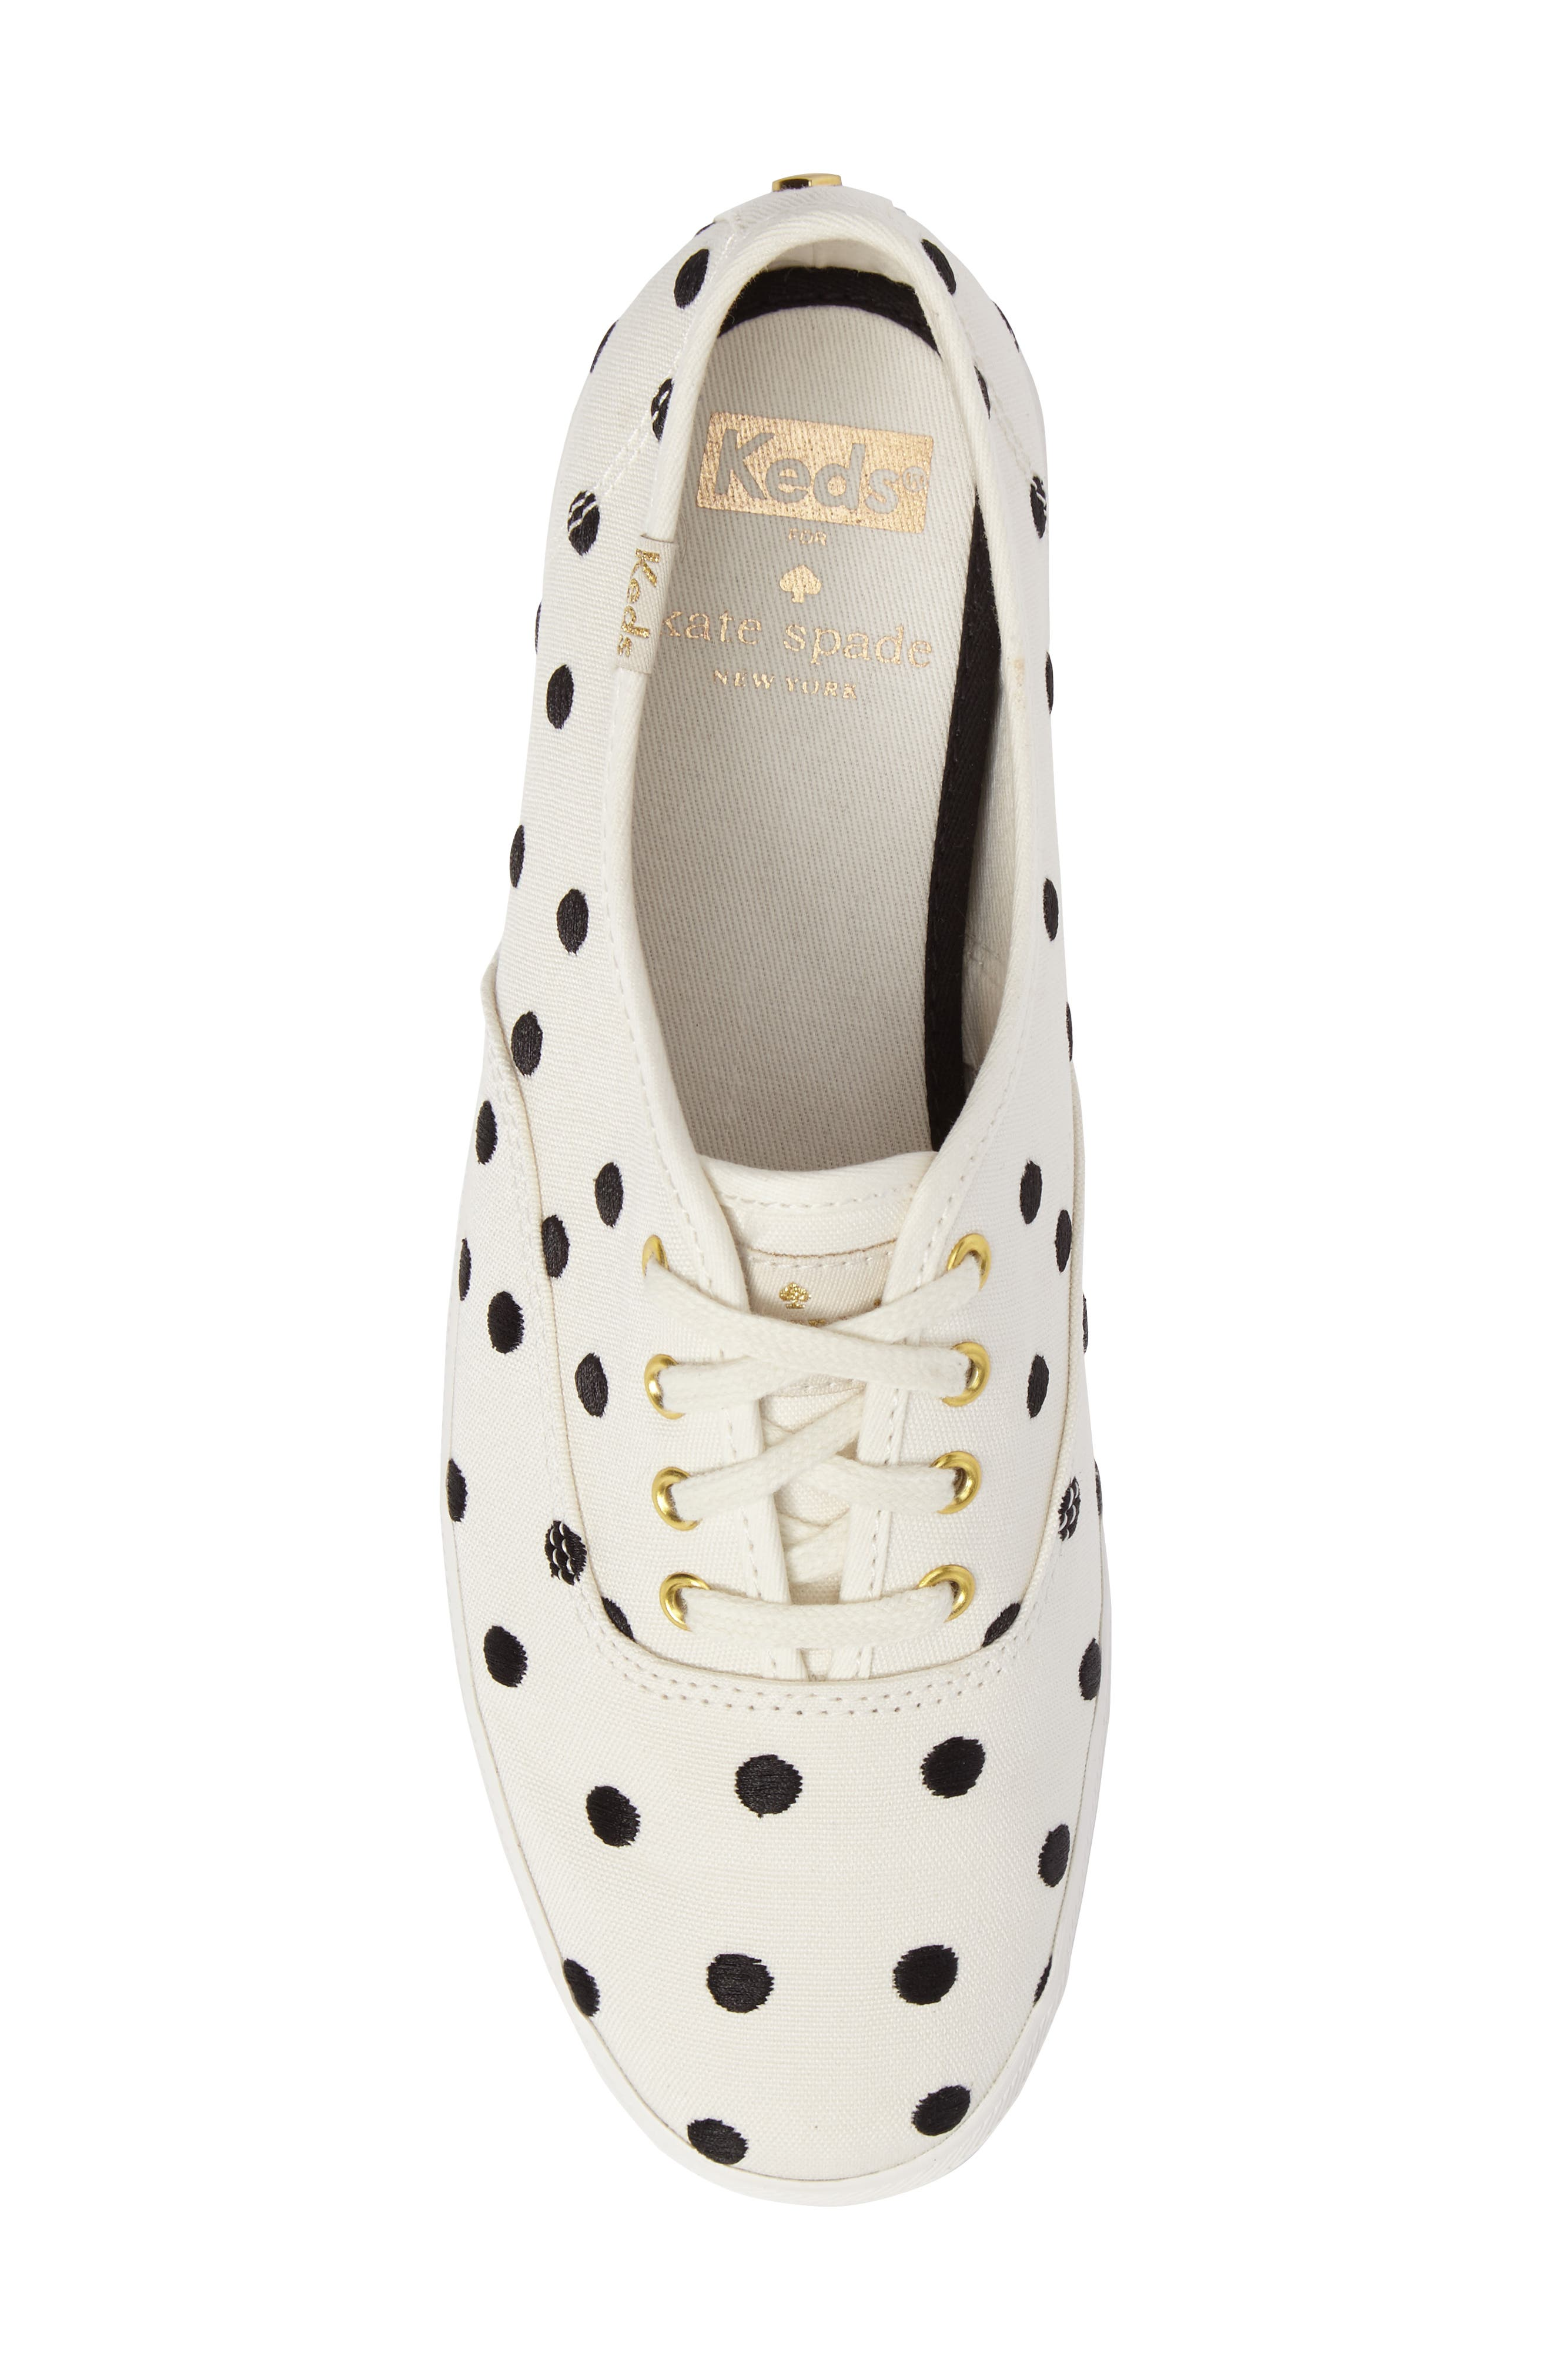 Keds<sup>®</sup> x kate spade new york champion sneaker,                             Alternate thumbnail 18, color,